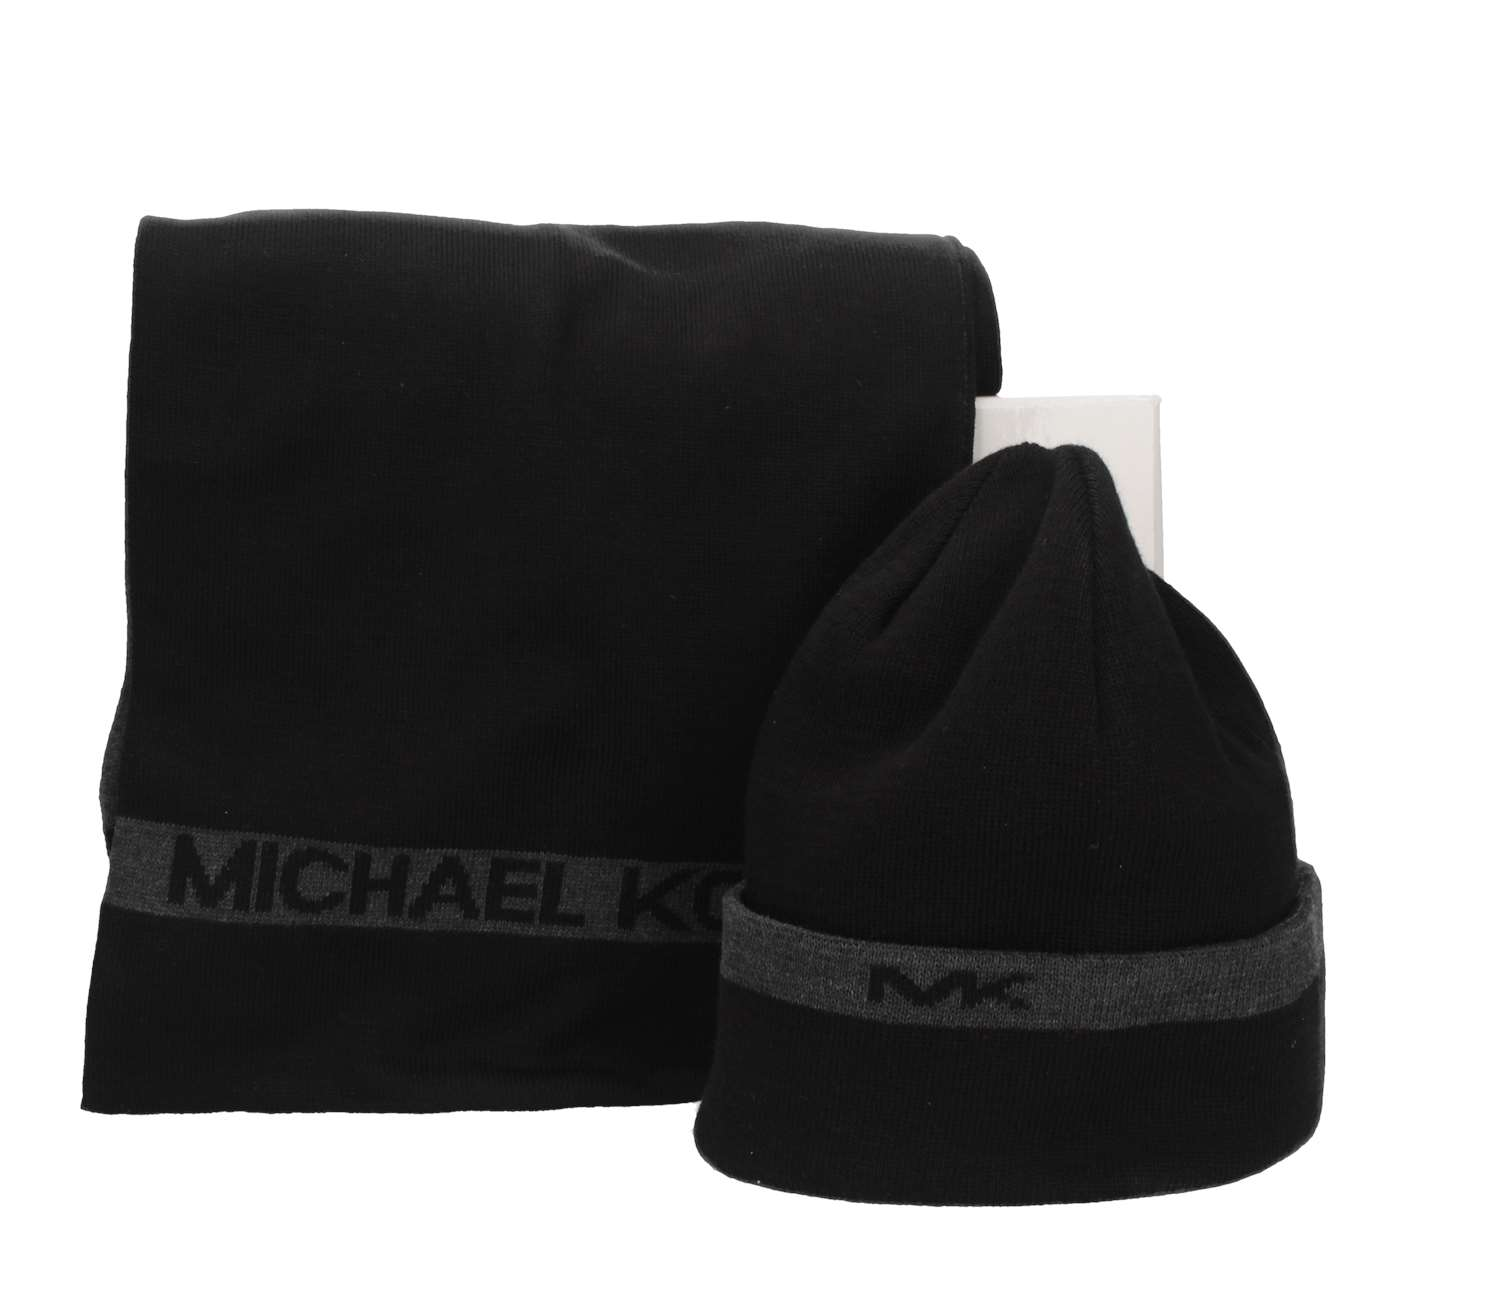 Michael Kors 33749 BLACK Black Accessories Man